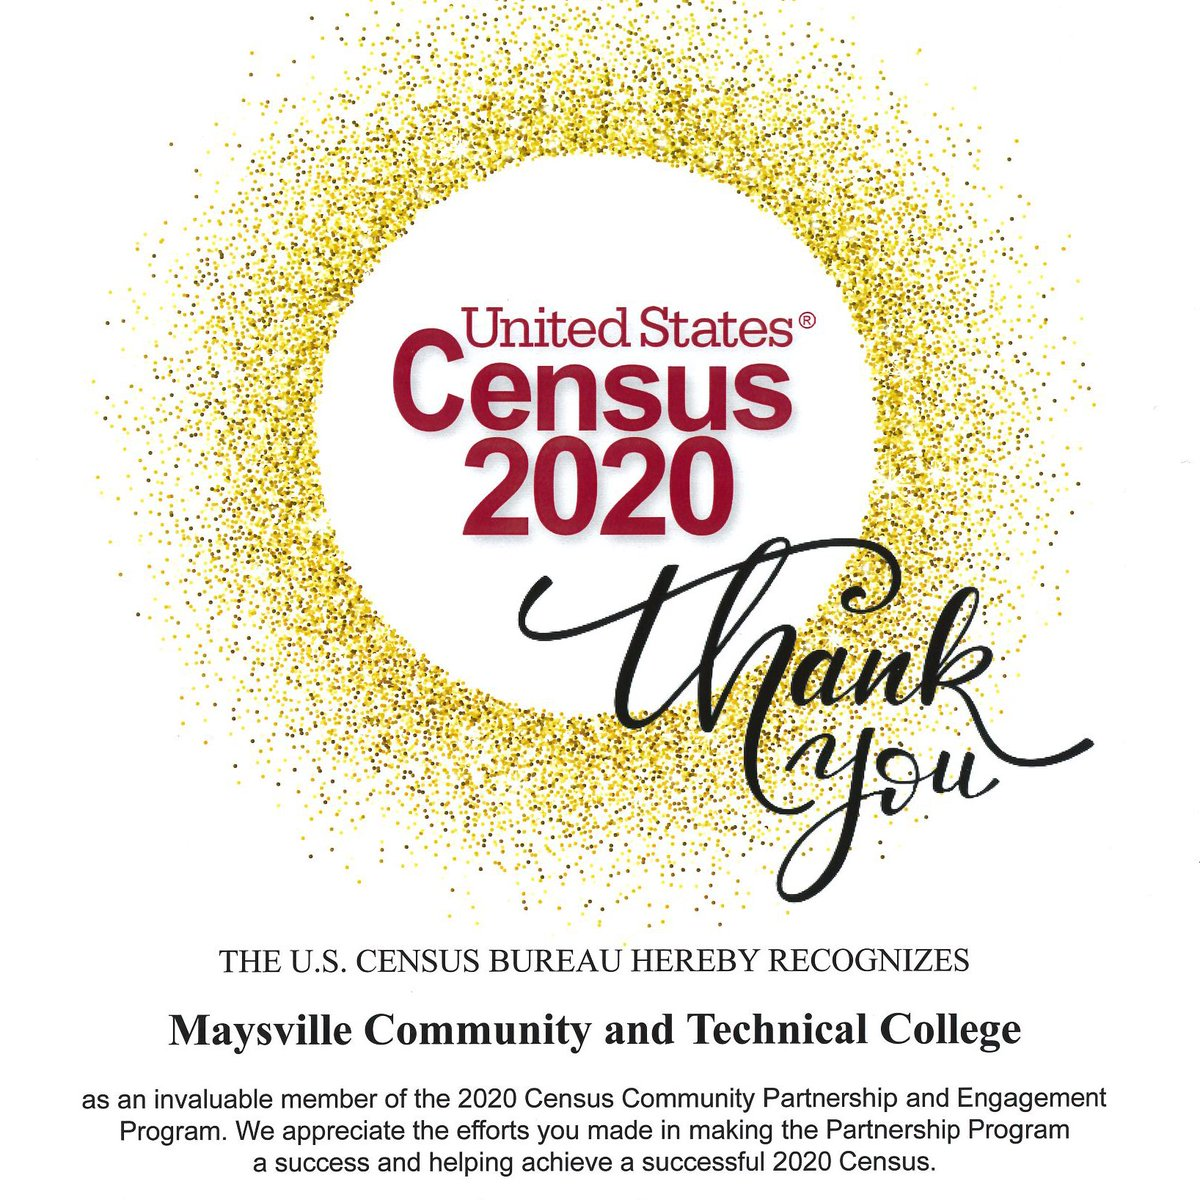 The @uscensusbureau has recognized MCTC as an invaluable member of the 2020 Census Community Partnership and Engagement Program. #census2020 #community #MCTCproud